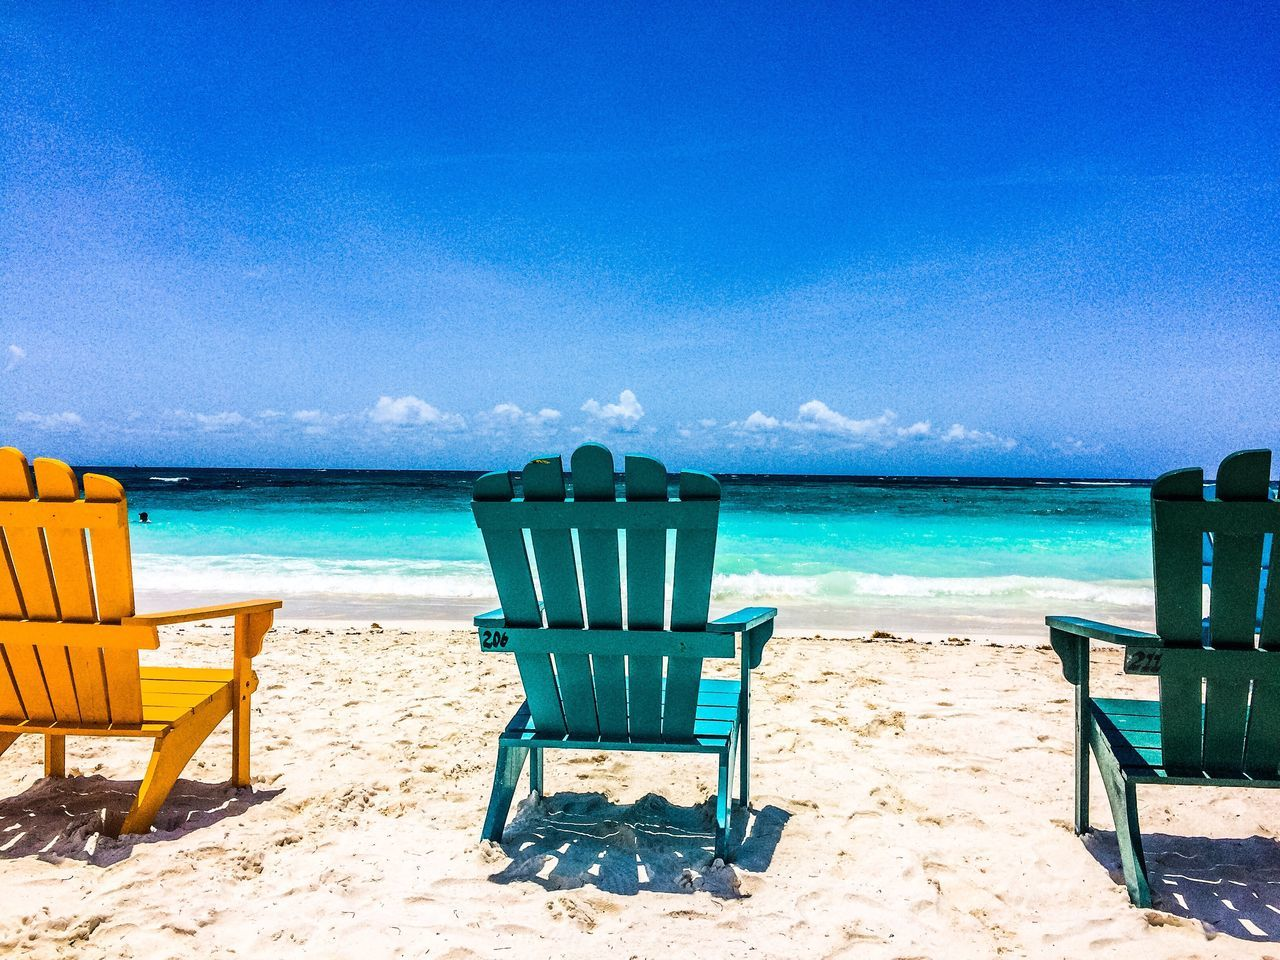 beach, sand, sea, shore, chair, horizon over water, vacations, water, tranquil scene, nature, relaxation, tranquility, blue, summer, sky, beauty in nature, outdoor chair, outdoors, idyllic, scenics, absence, day, sun lounger, sunlight, seat, no people, travel destinations